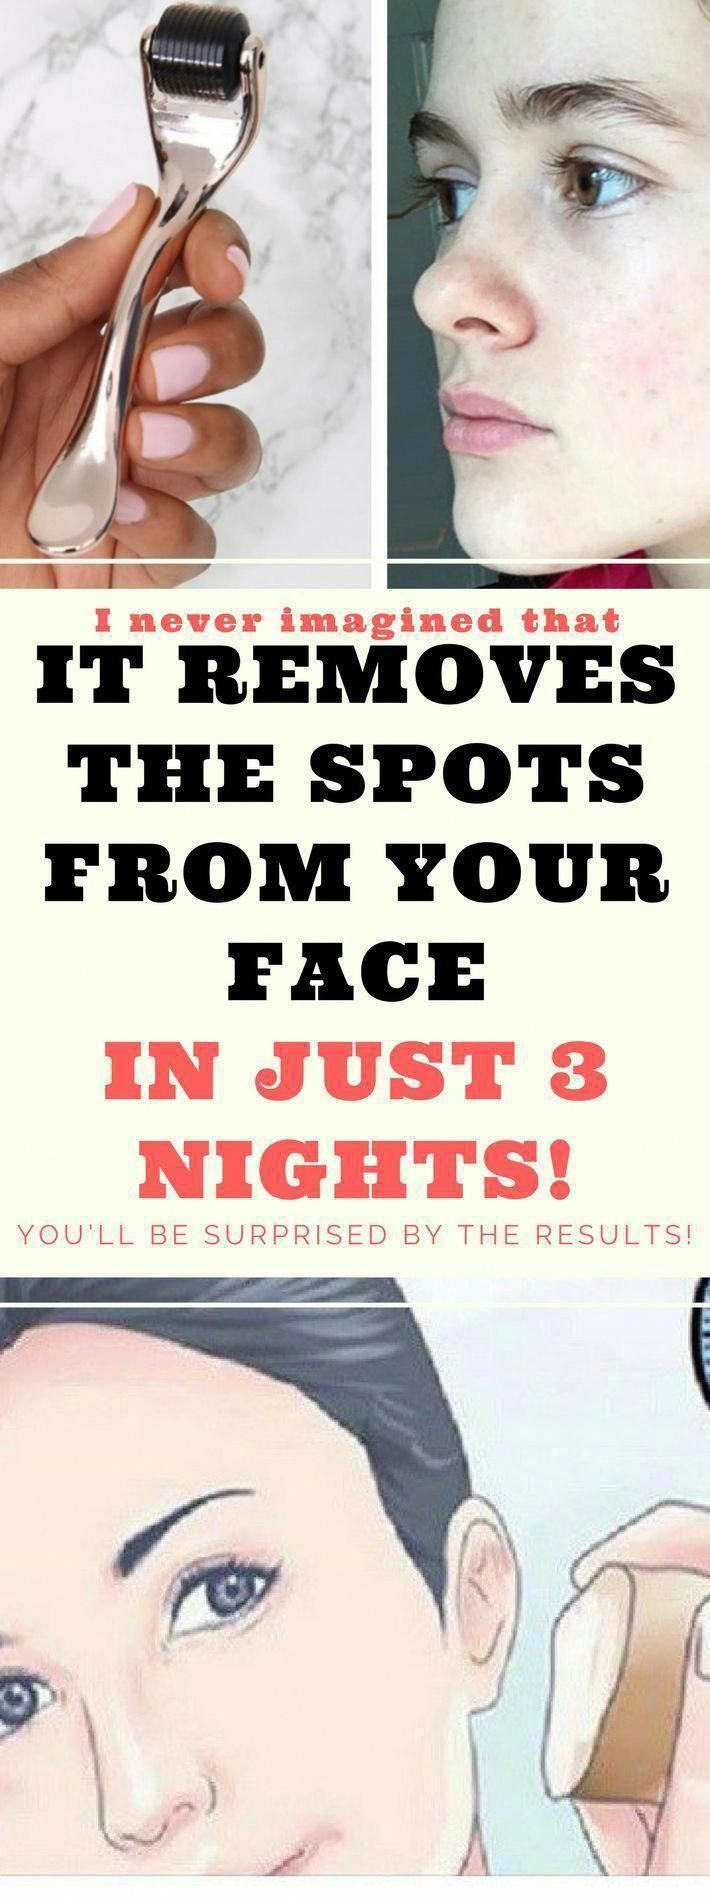 How to Get rid of Brown Spots on Facial area The natural